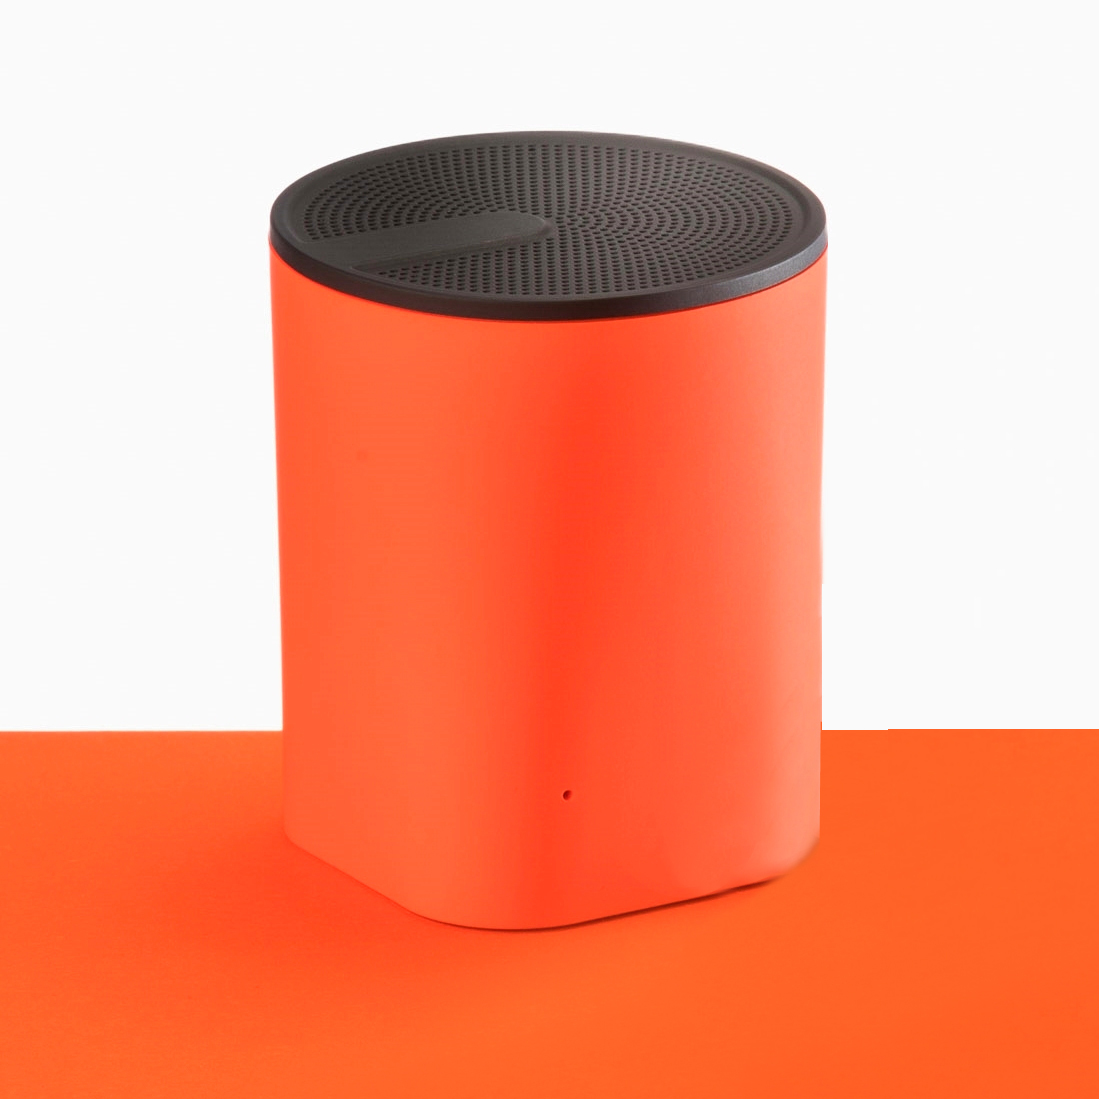 Orange Colour Sound Compact Speaker